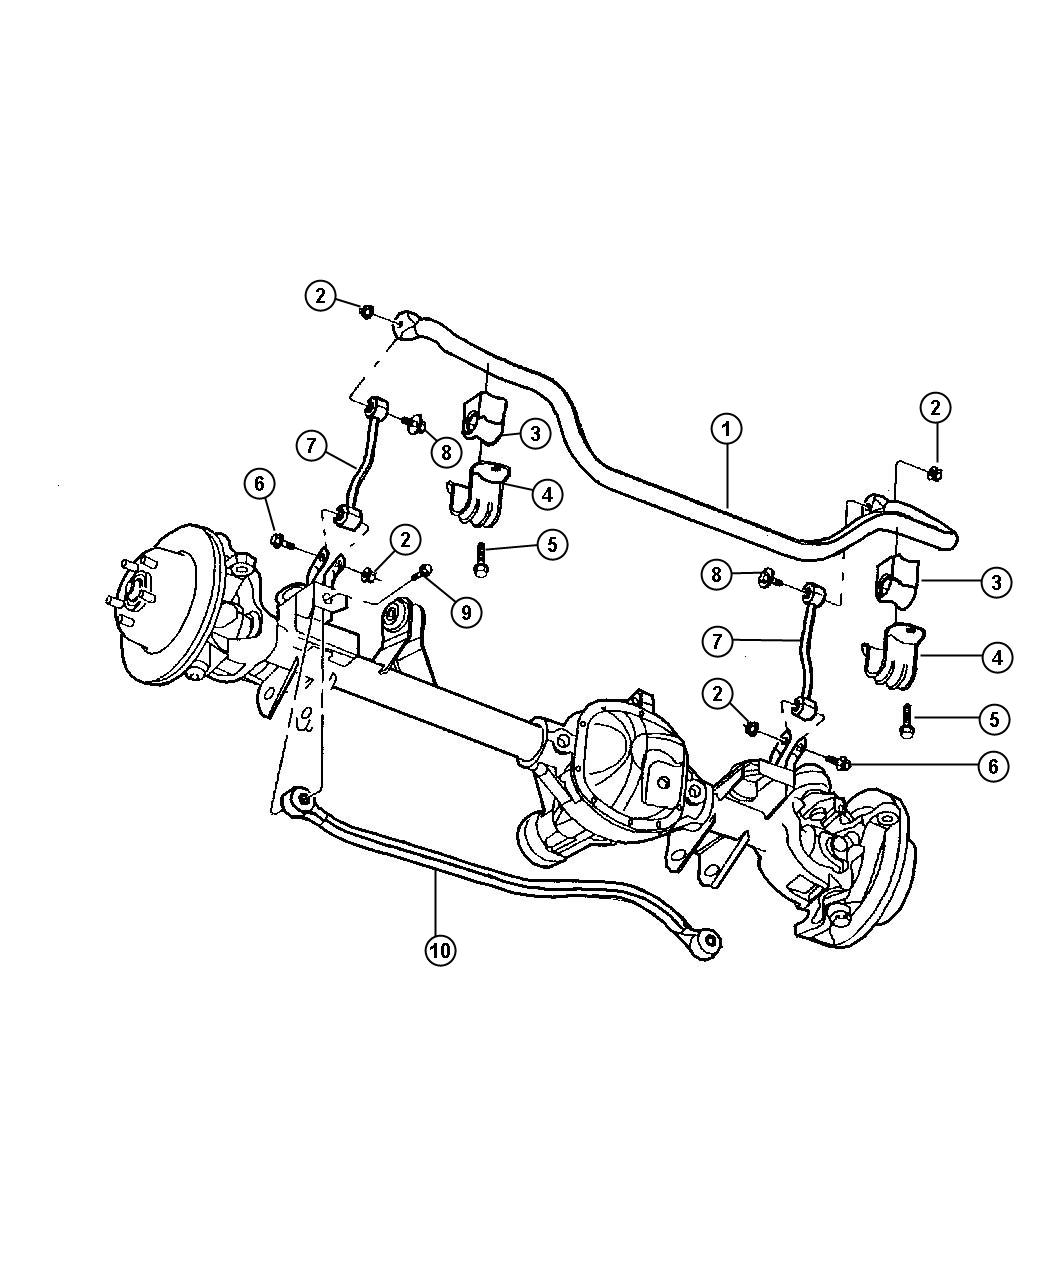 Mercedes C230 Parts Diagram Mercedes Auto Wiring Diagram